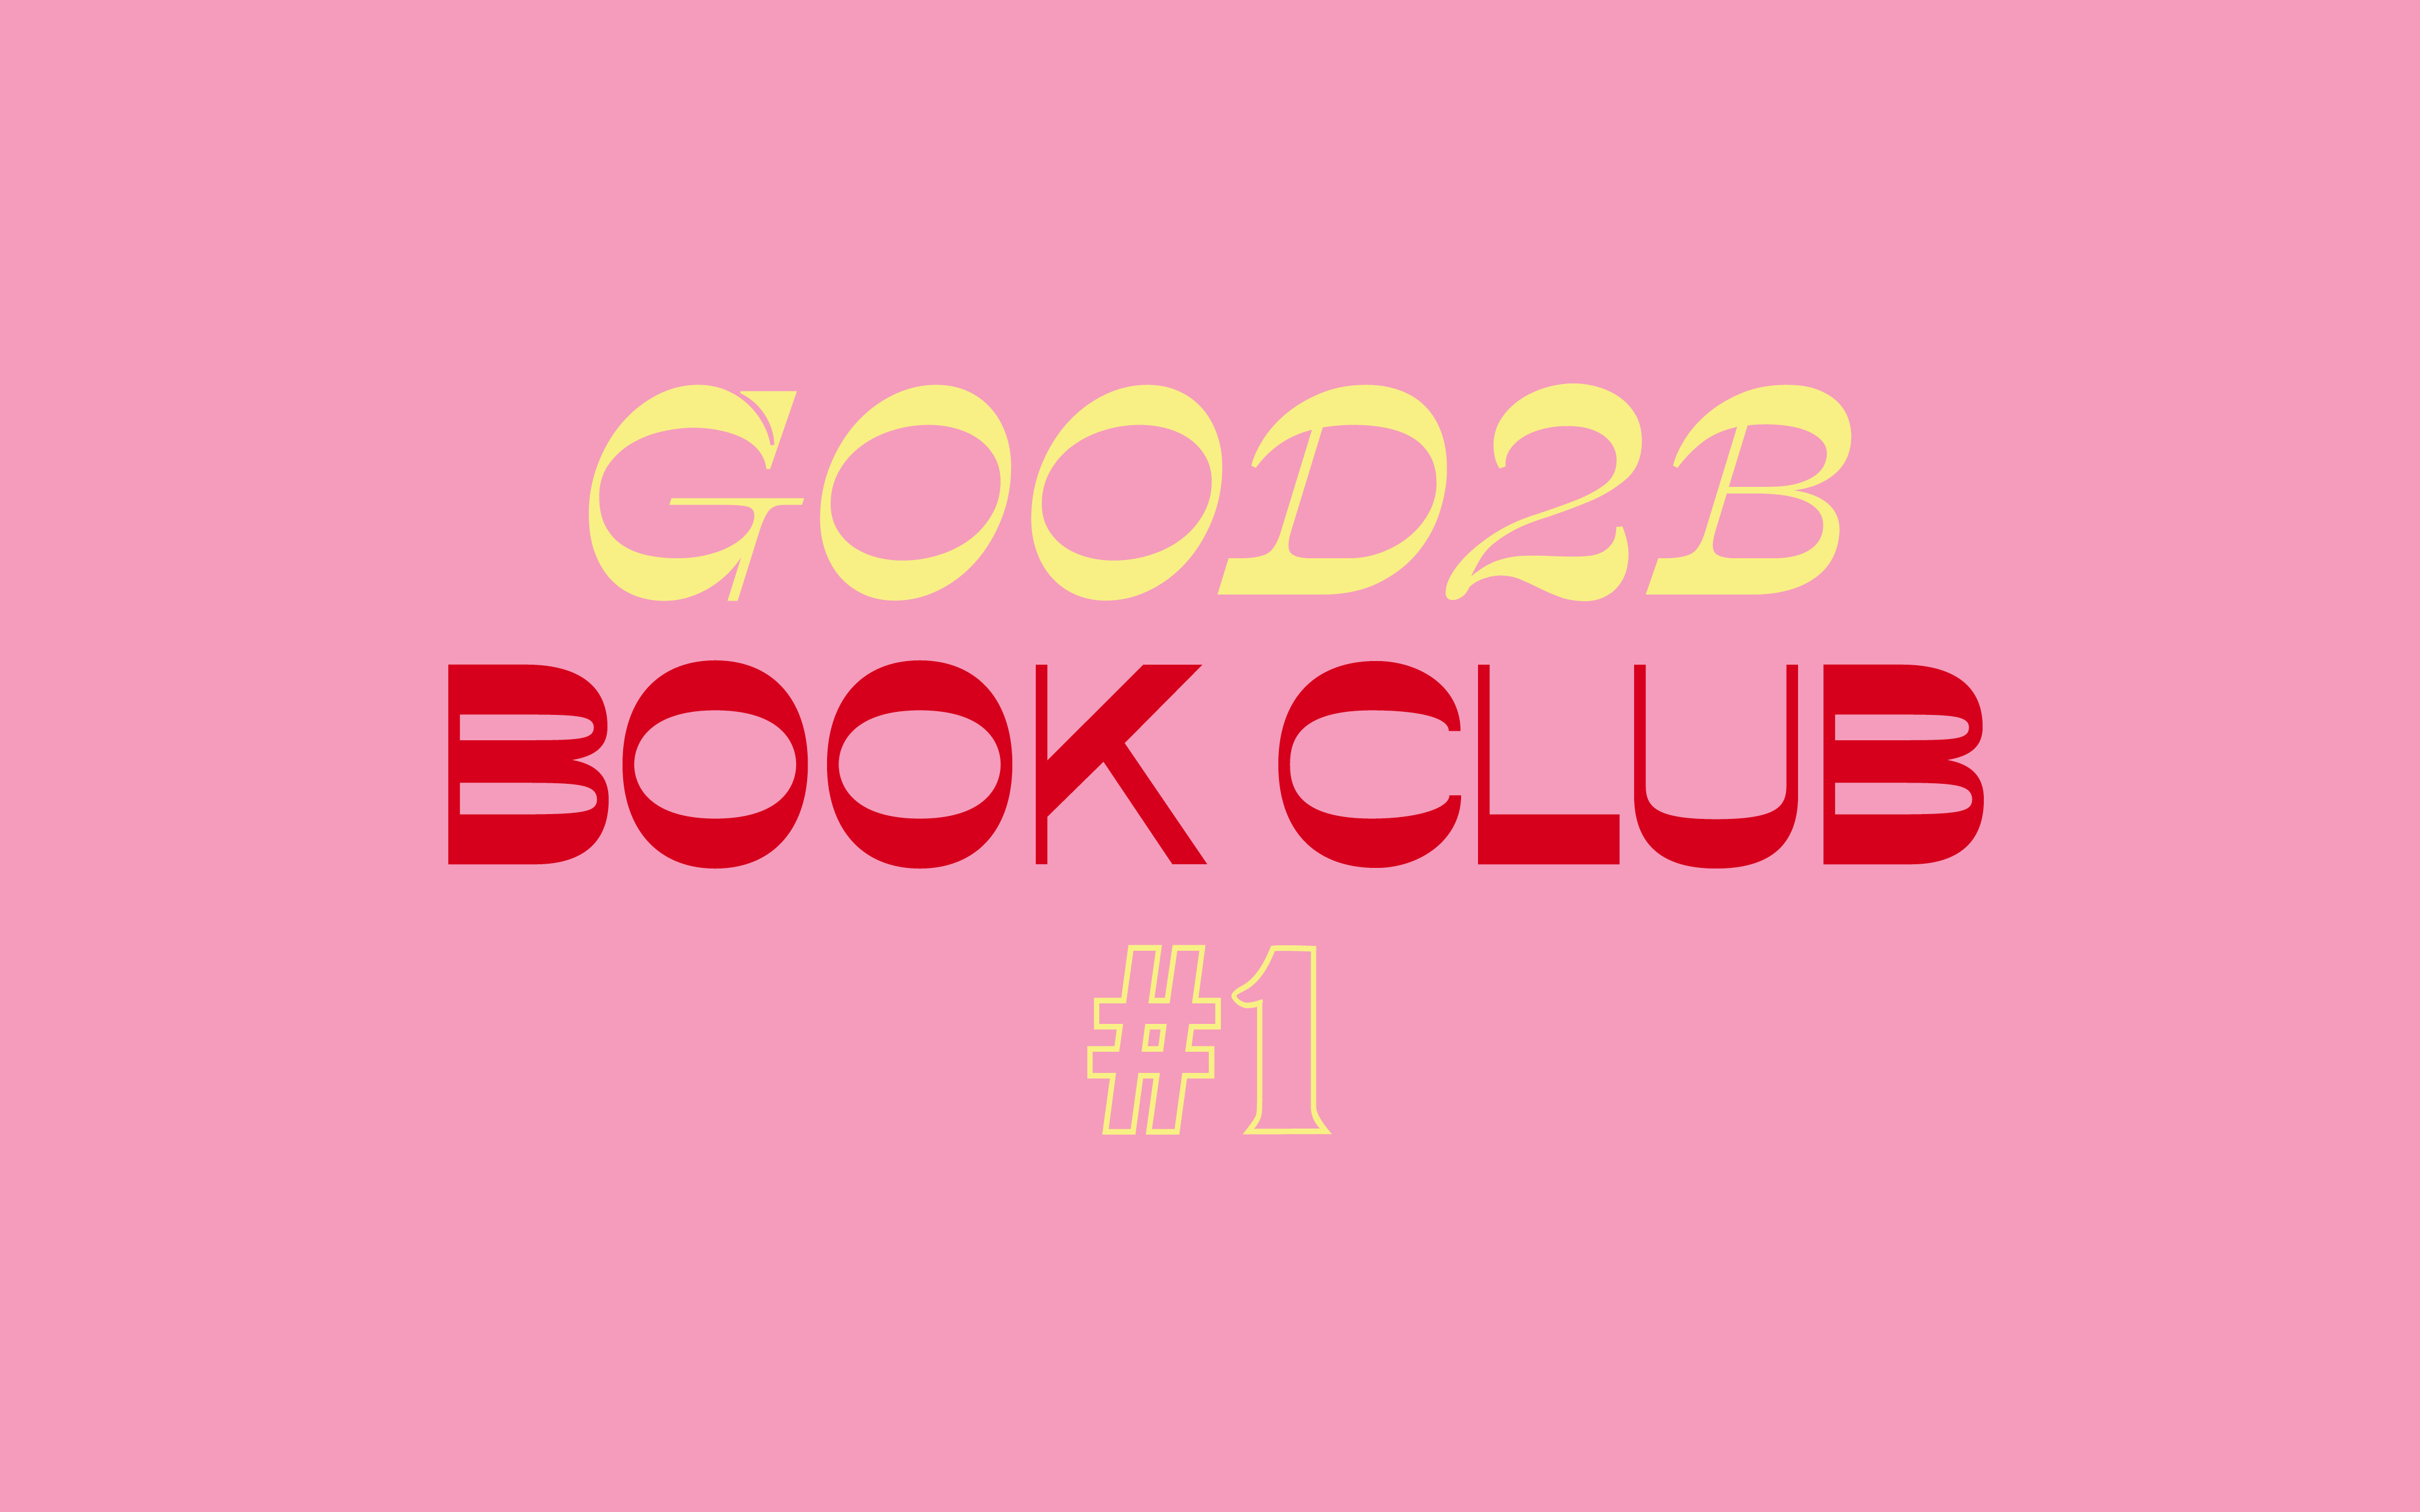 Good2b Book Club #1: Bienvenidos + 'Little Women'